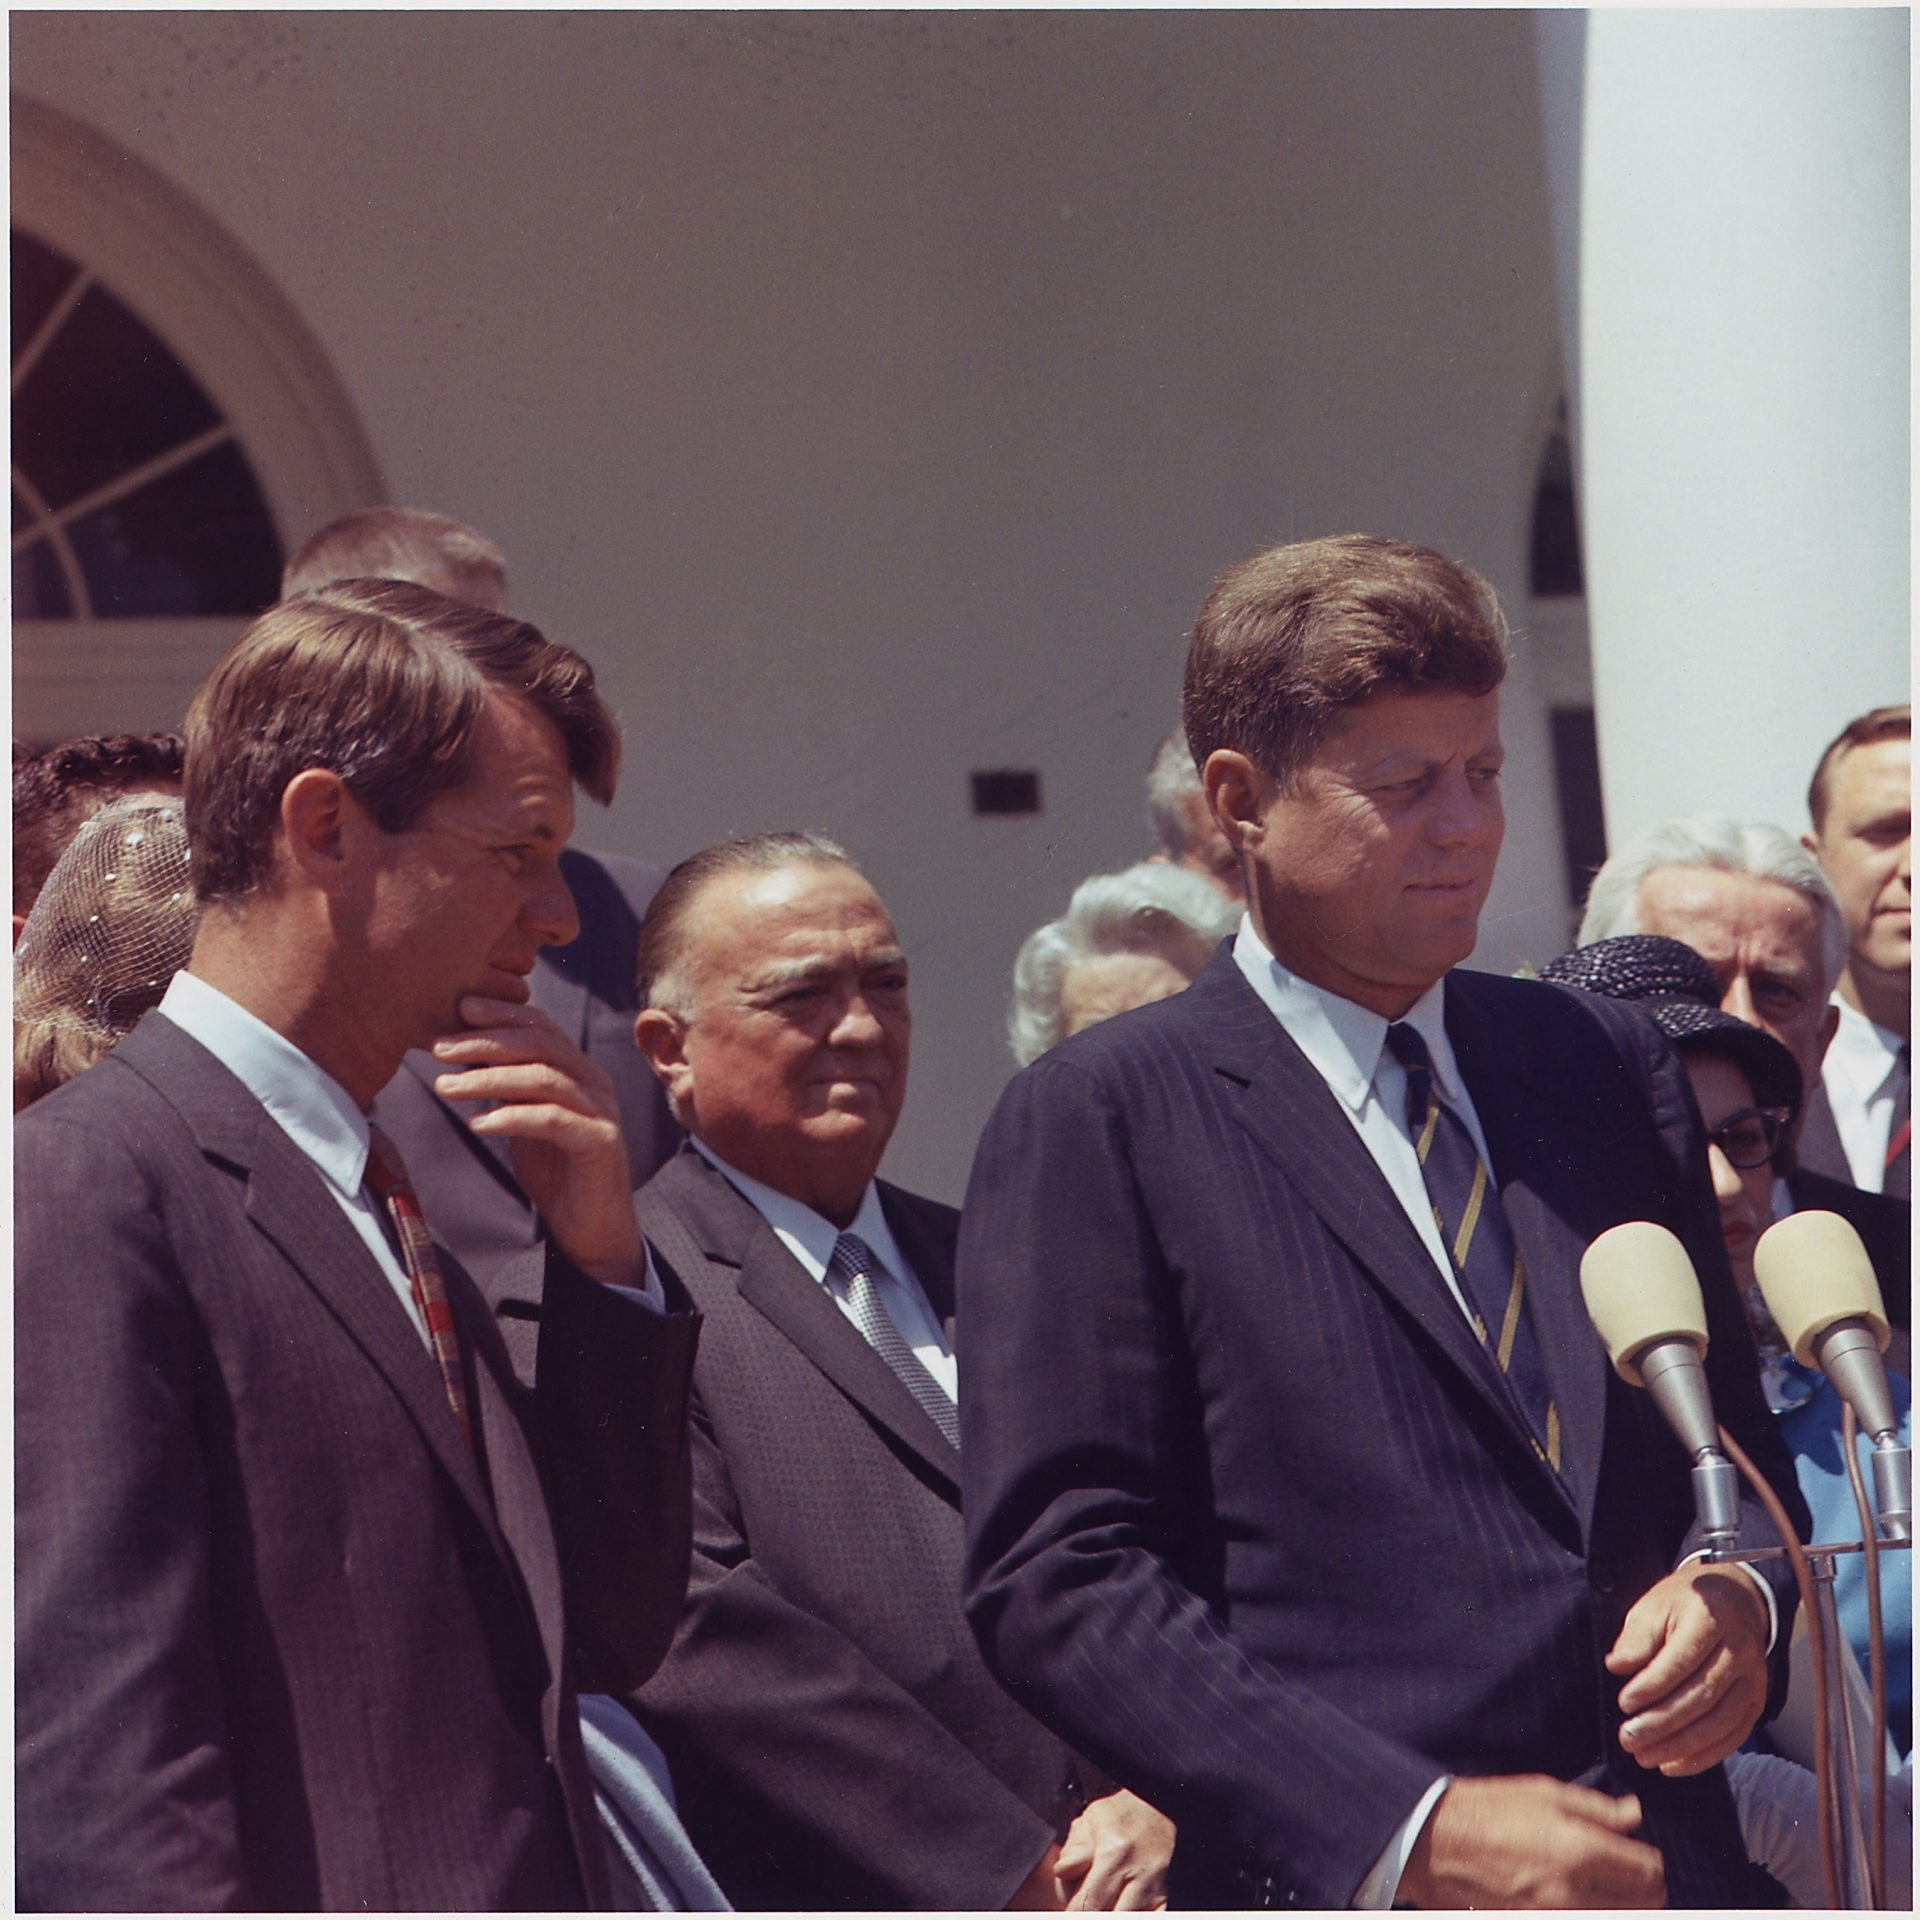 Presentation of the Young American Medals for Bravery by President John F. Kennedy and Attorney General Robert F. Kennedy, Sr in 1963. (Image: pixabay / CC0 1.0)